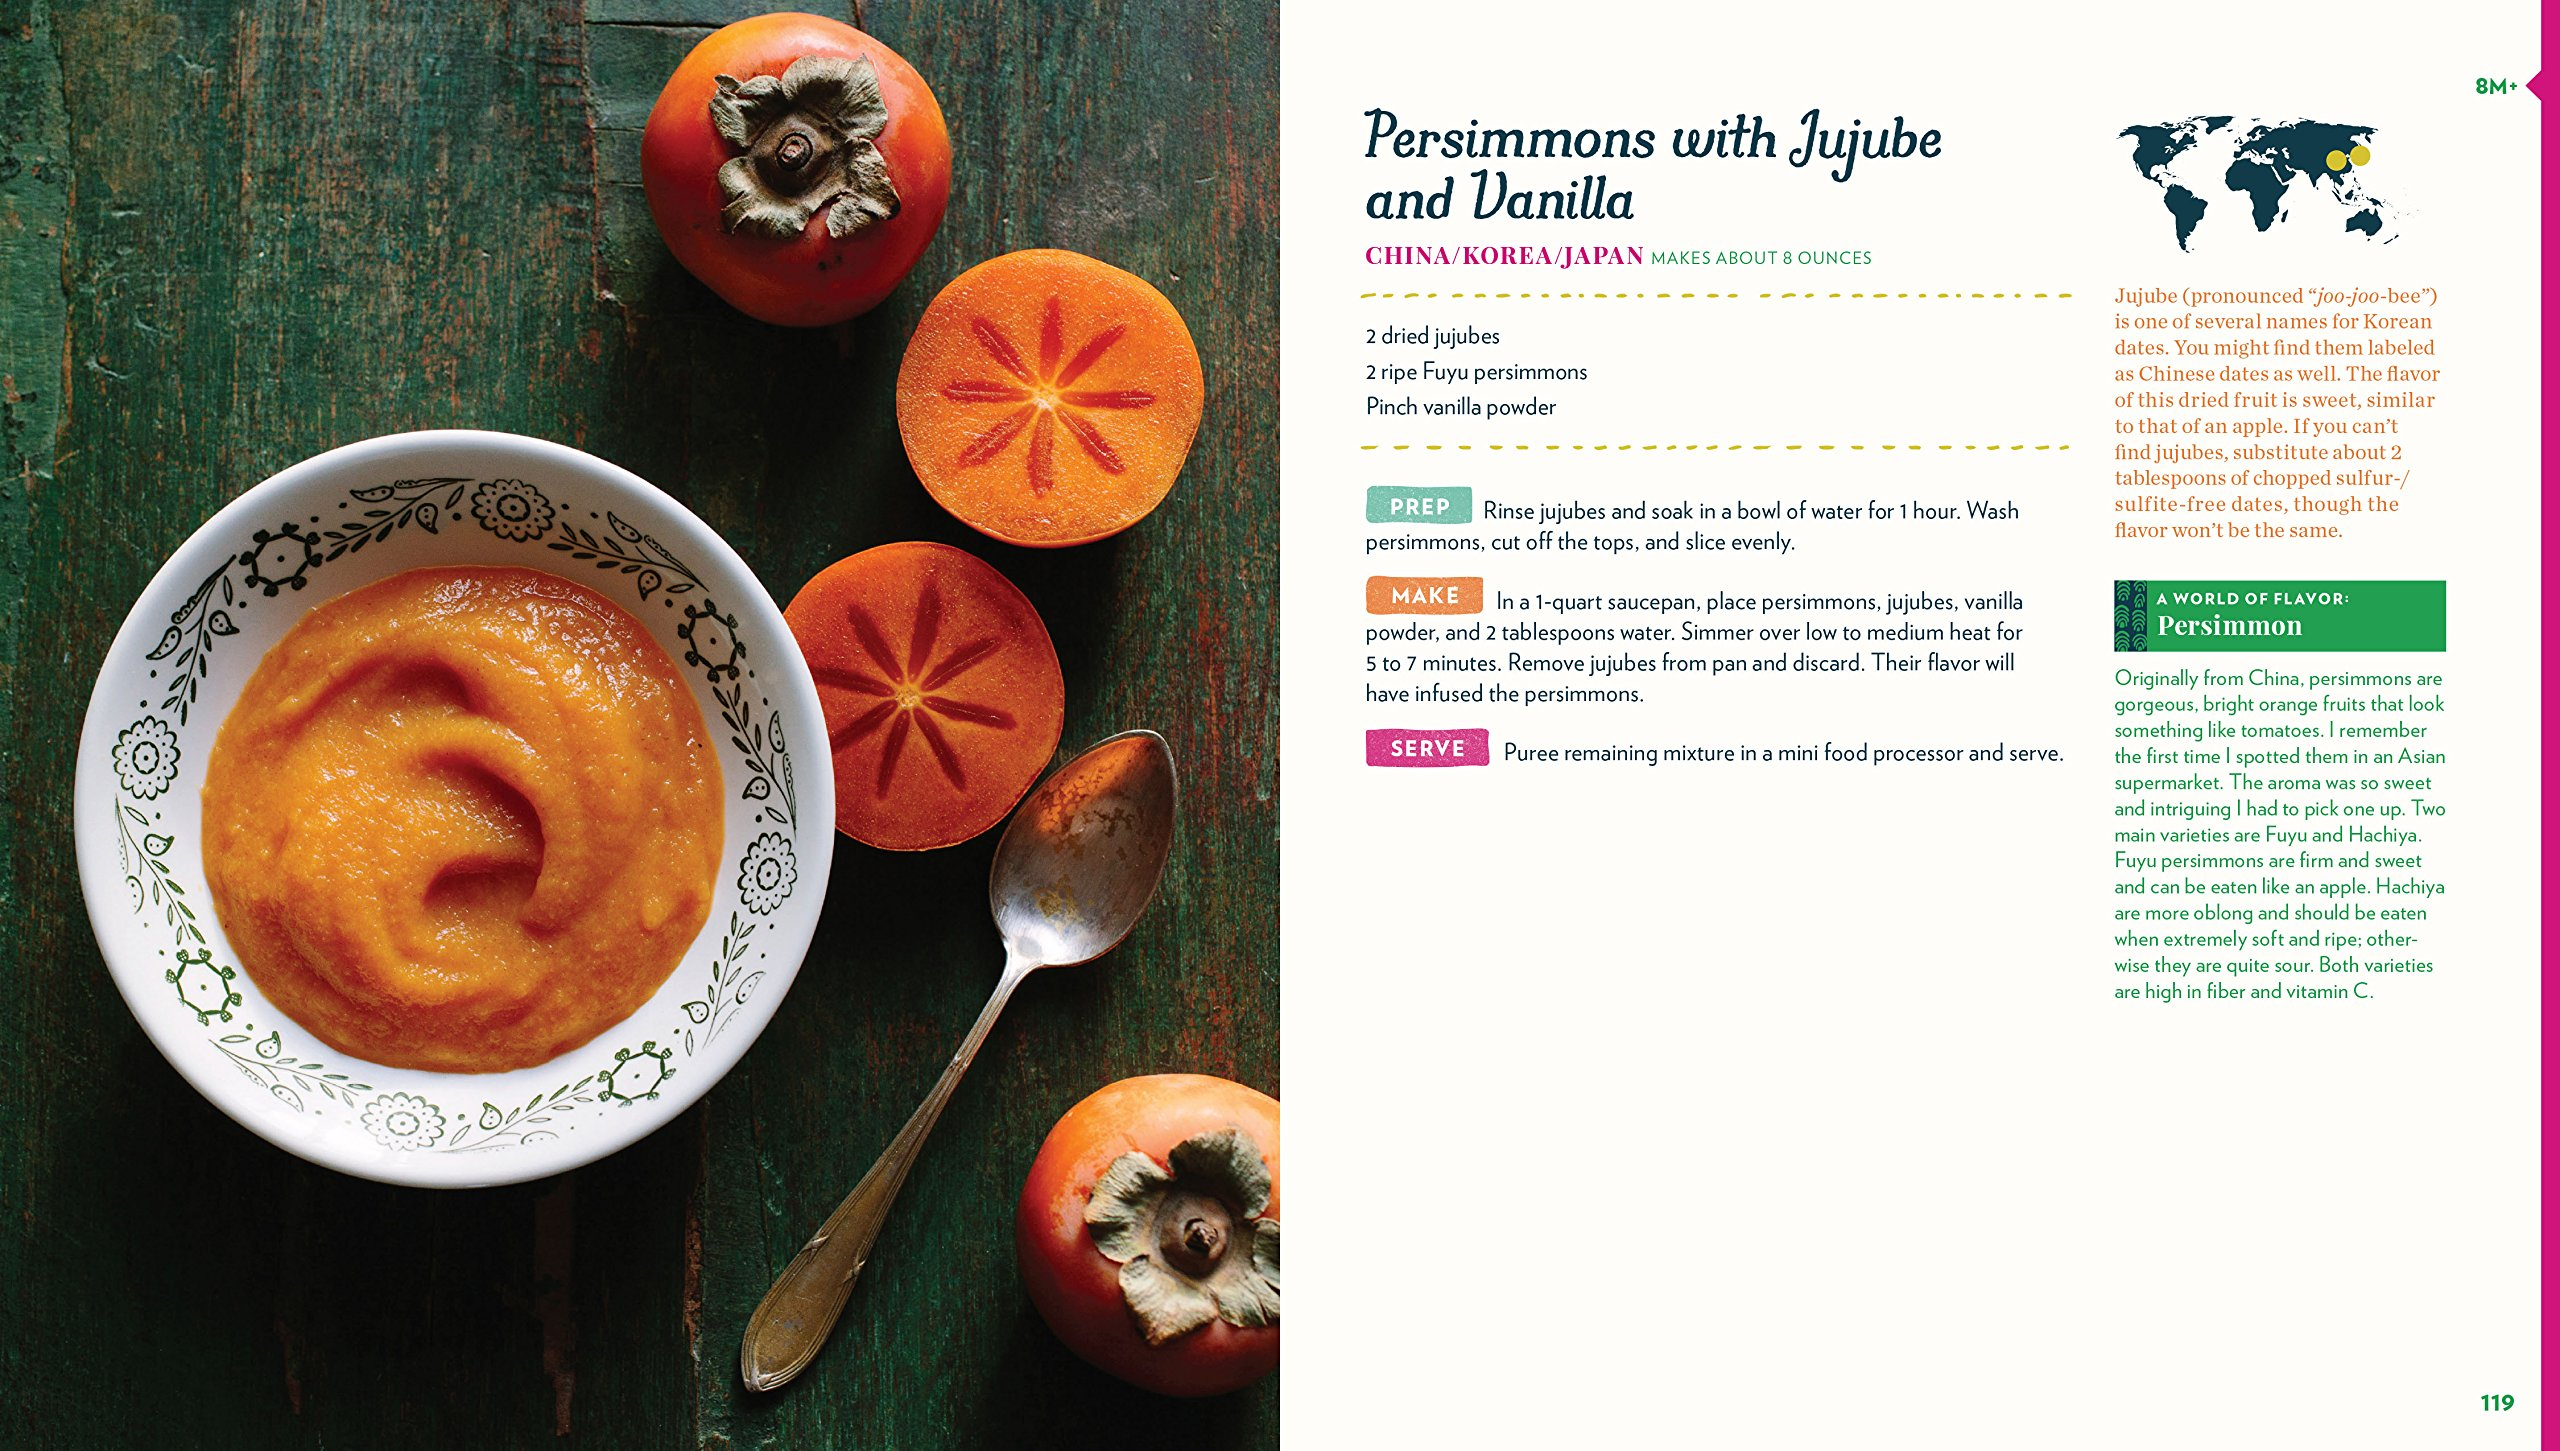 Amazon around the world in 80 purees easy recipes for global amazon around the world in 80 purees easy recipes for global baby food 9781594748950 leena saini books forumfinder Images